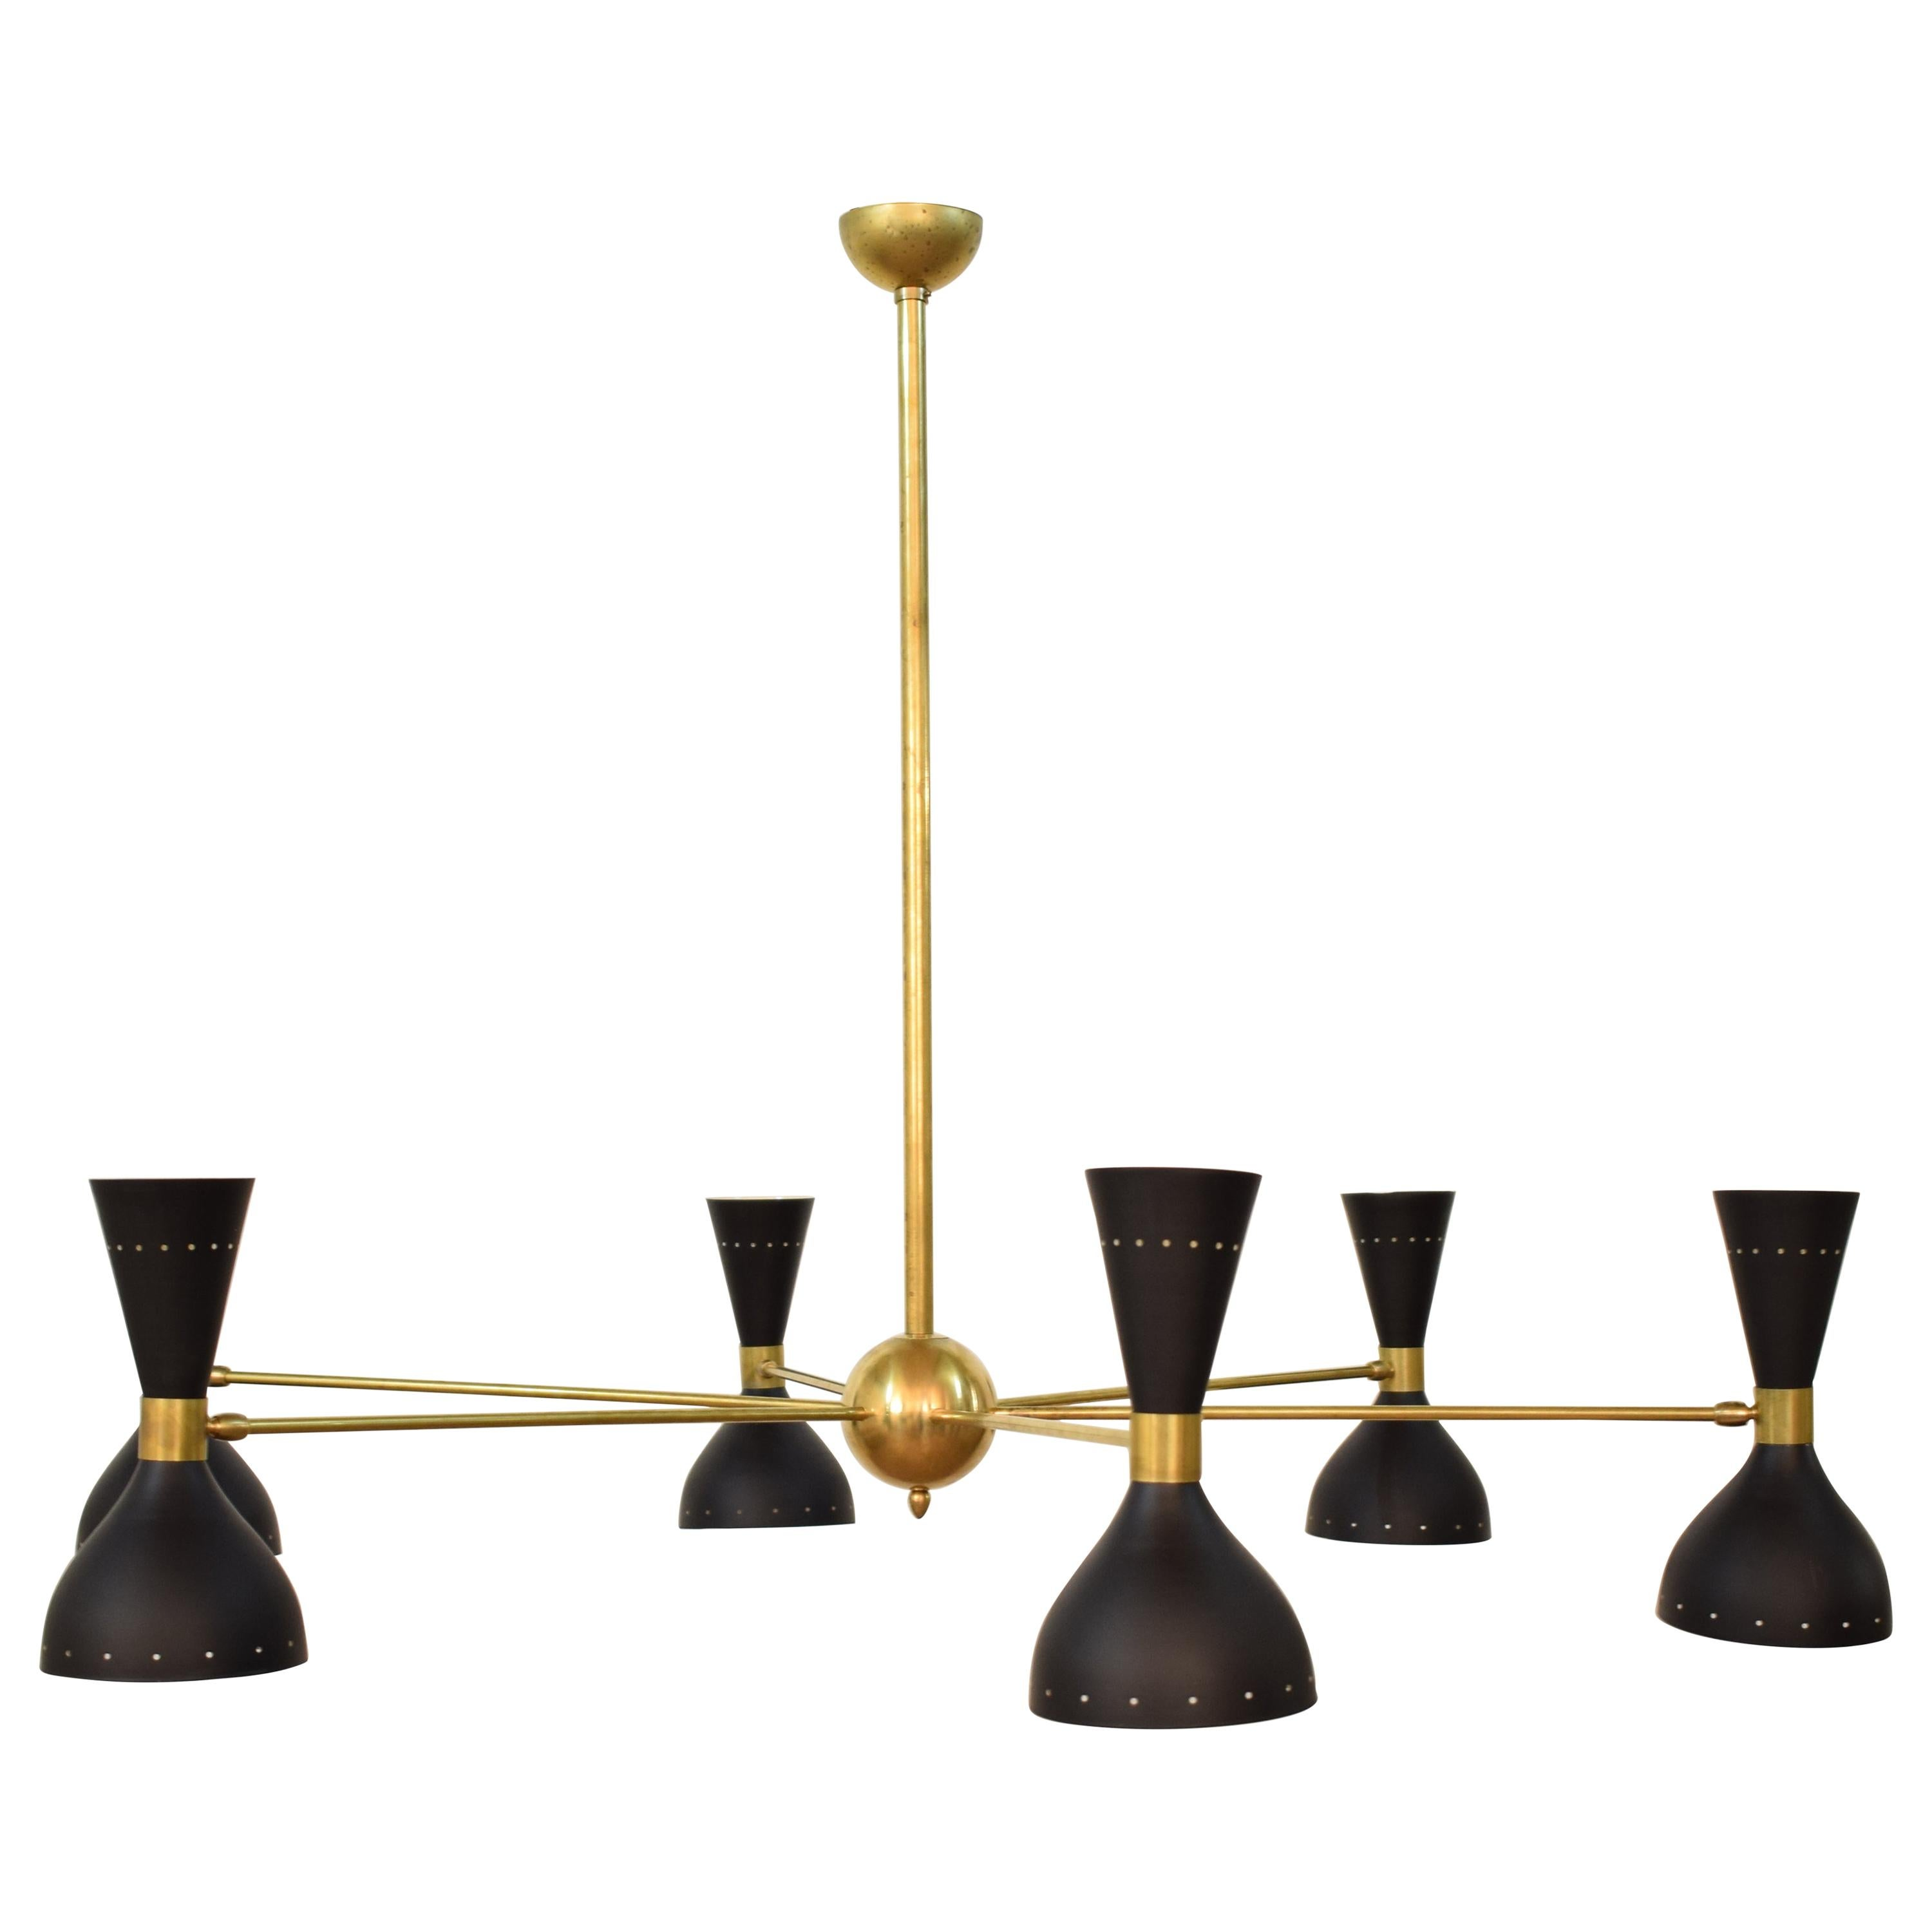 Large Midcentury Style Chandelier in Brass and Black Lacquered Metal